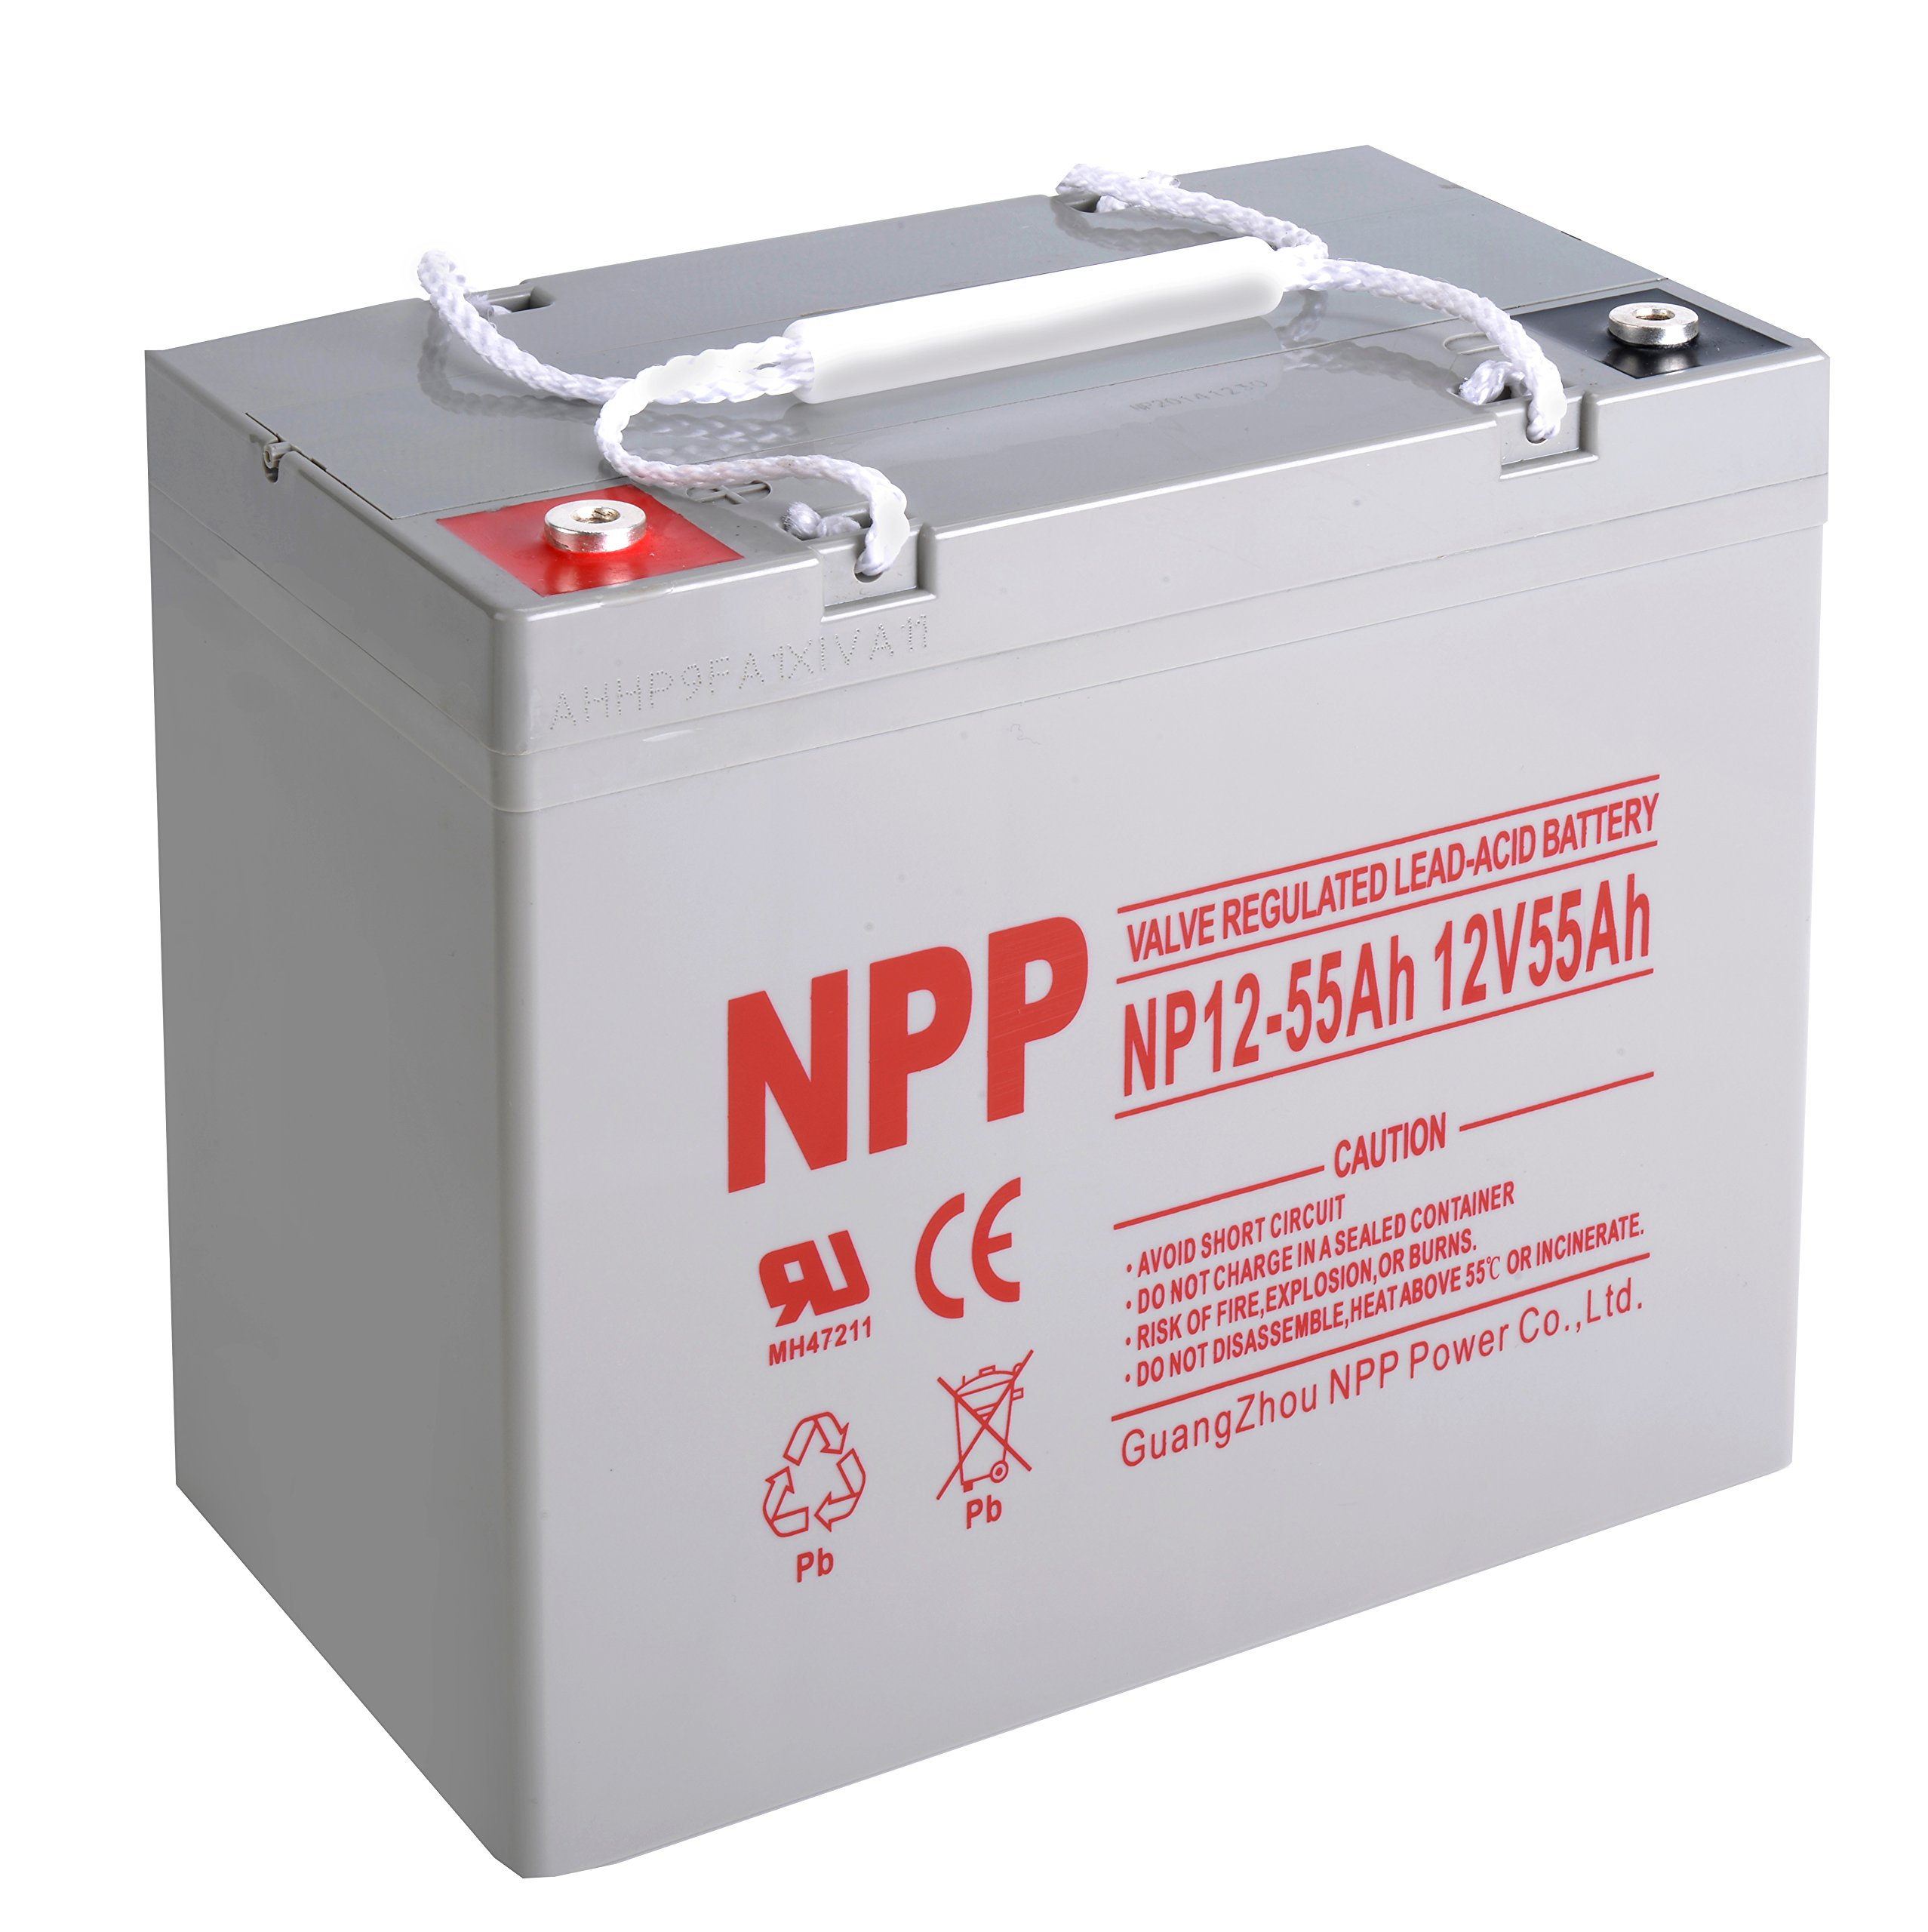 NPP NP12-55Ah Rechargeable AGM SLA 12V 55Ah Battery with Button Style Terminals by NPP